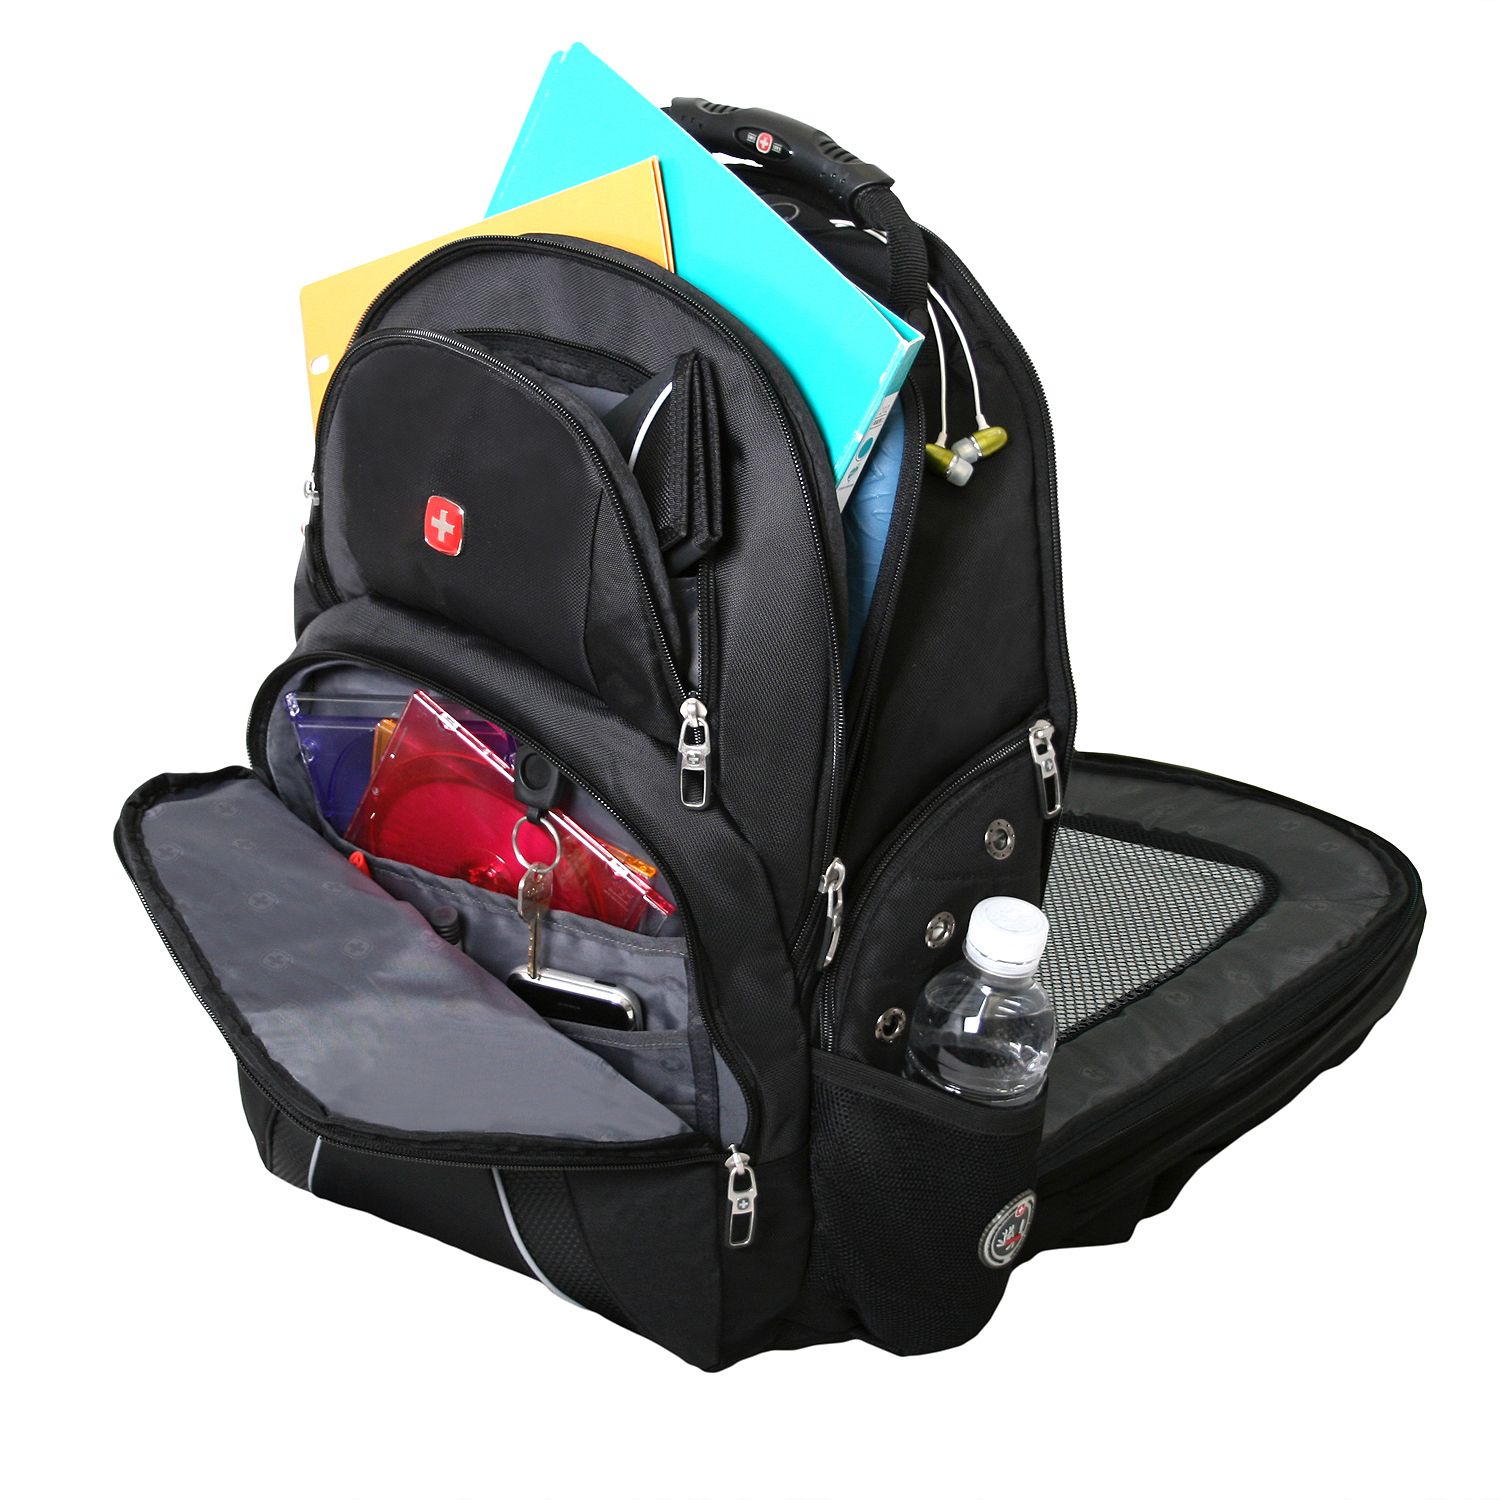 SwissGear ScanSmart Laptop Backpack - Black - Walmart.com